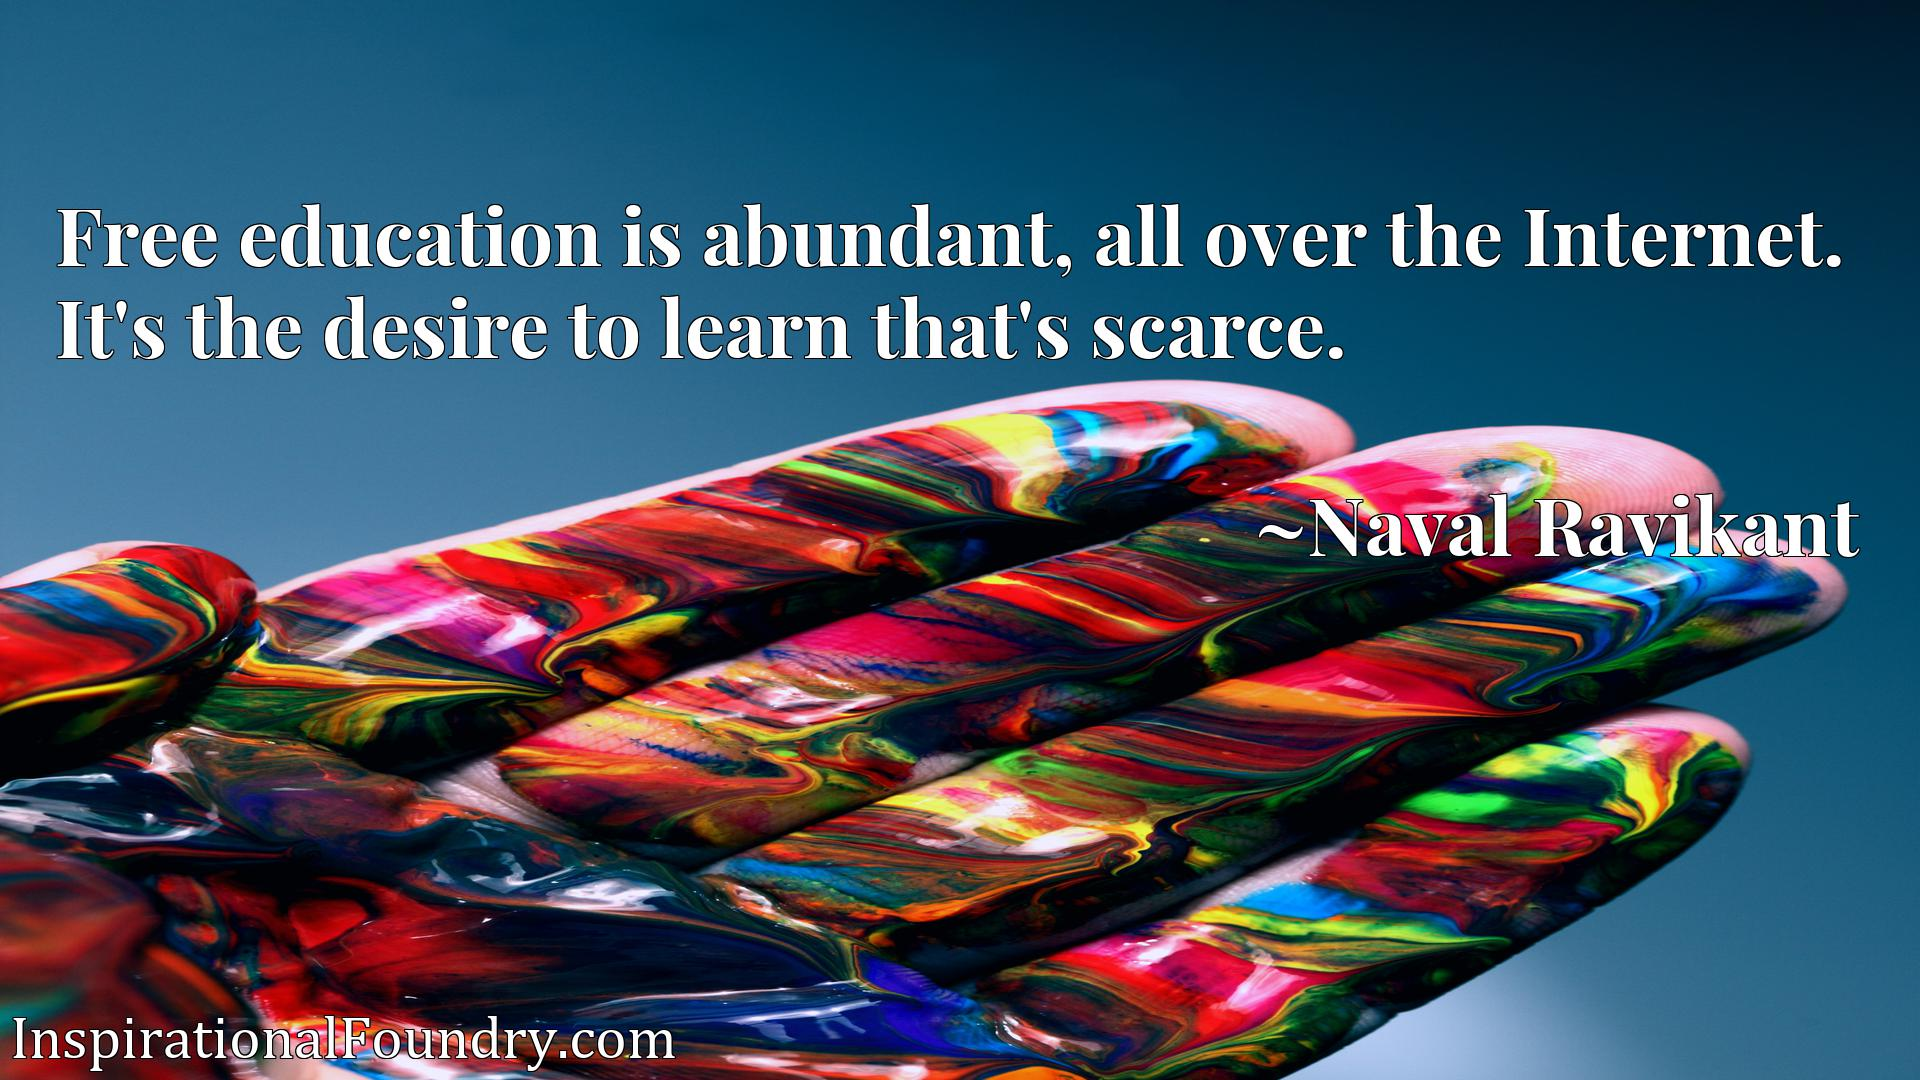 Free education is abundant, all over the Internet. It's the desire to learn that's scarce.